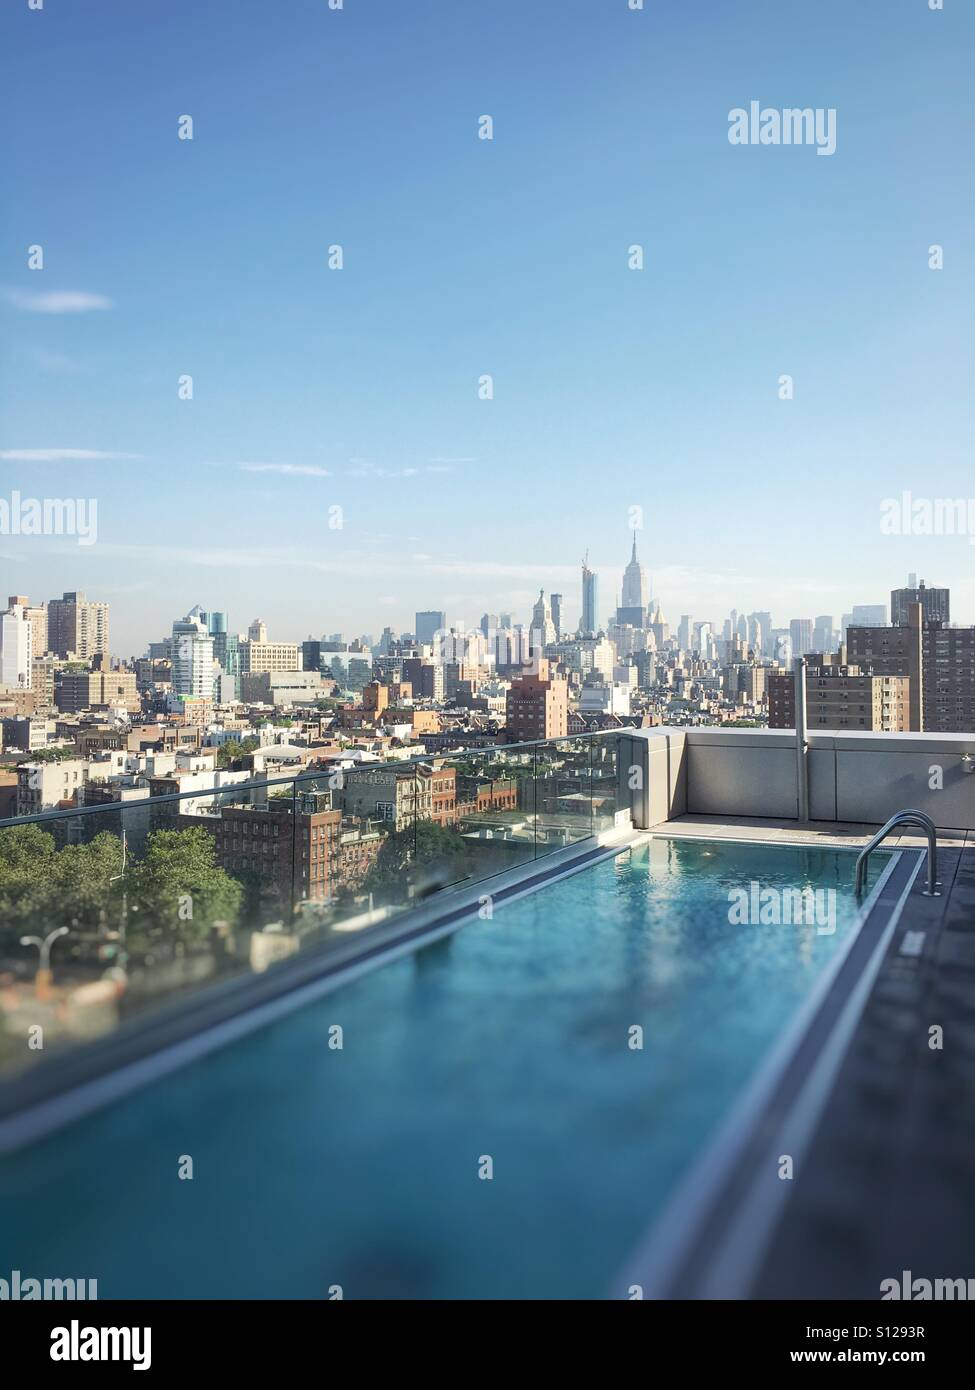 Roof top pool in Manhattan from East Village (Hotel Indigo), New York, NY Stock Photo